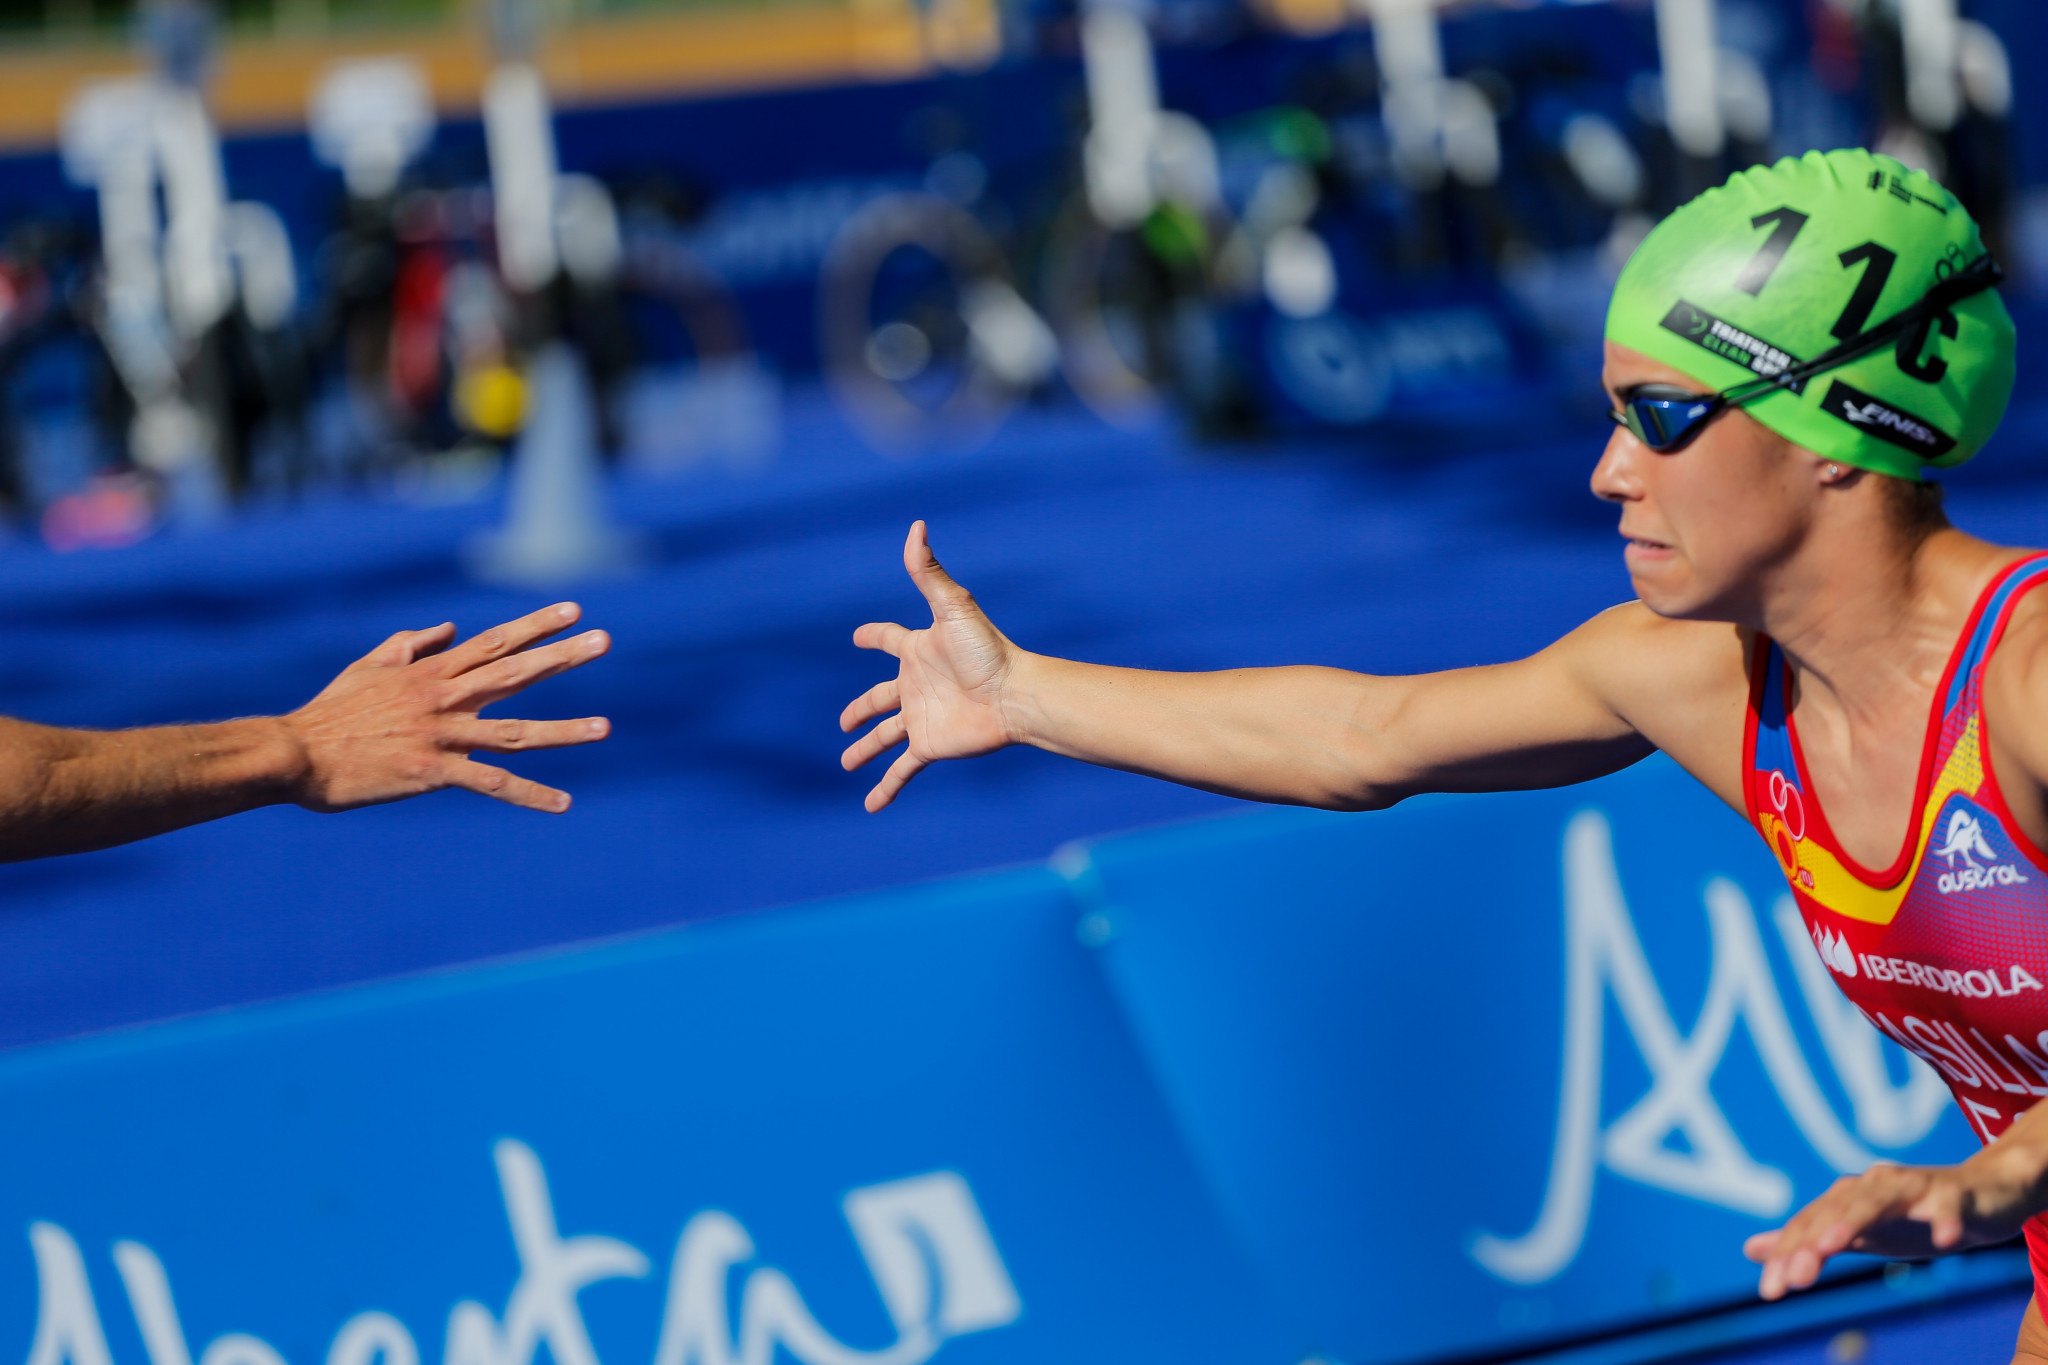 The ITU has moved its mixed relay Olympic qualification event from Chengdu to Valencia because of the coronavirus outbreak ©ITU